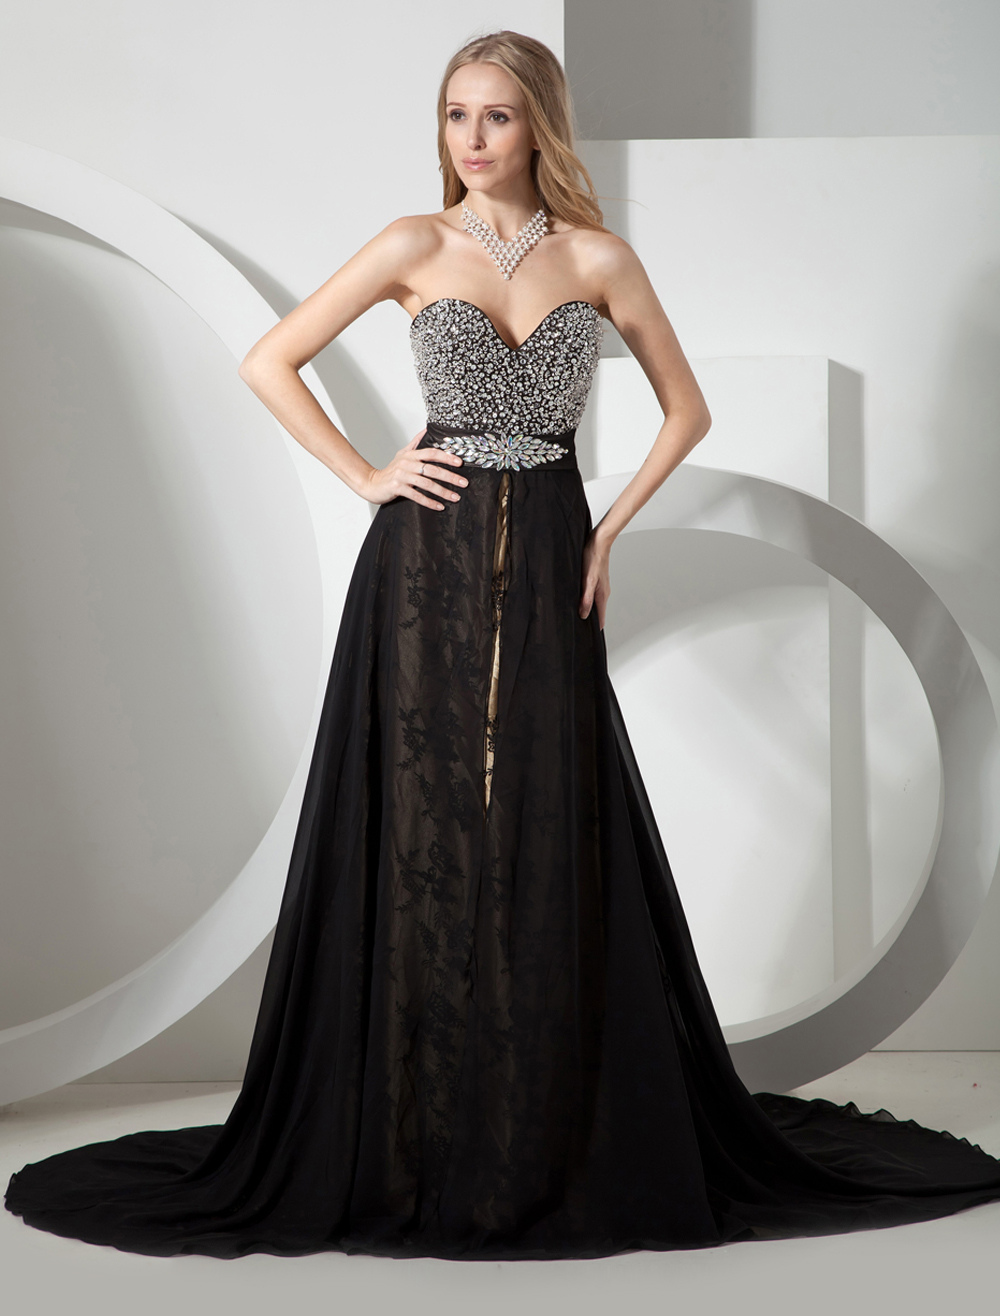 72672c2c78ab2 ... Black Wedding Dress Fully Beaded Sweetheart Bodice Exquisite Lace  Chiffon Overlay-No.8. 12. 30%OFF. Color:Black